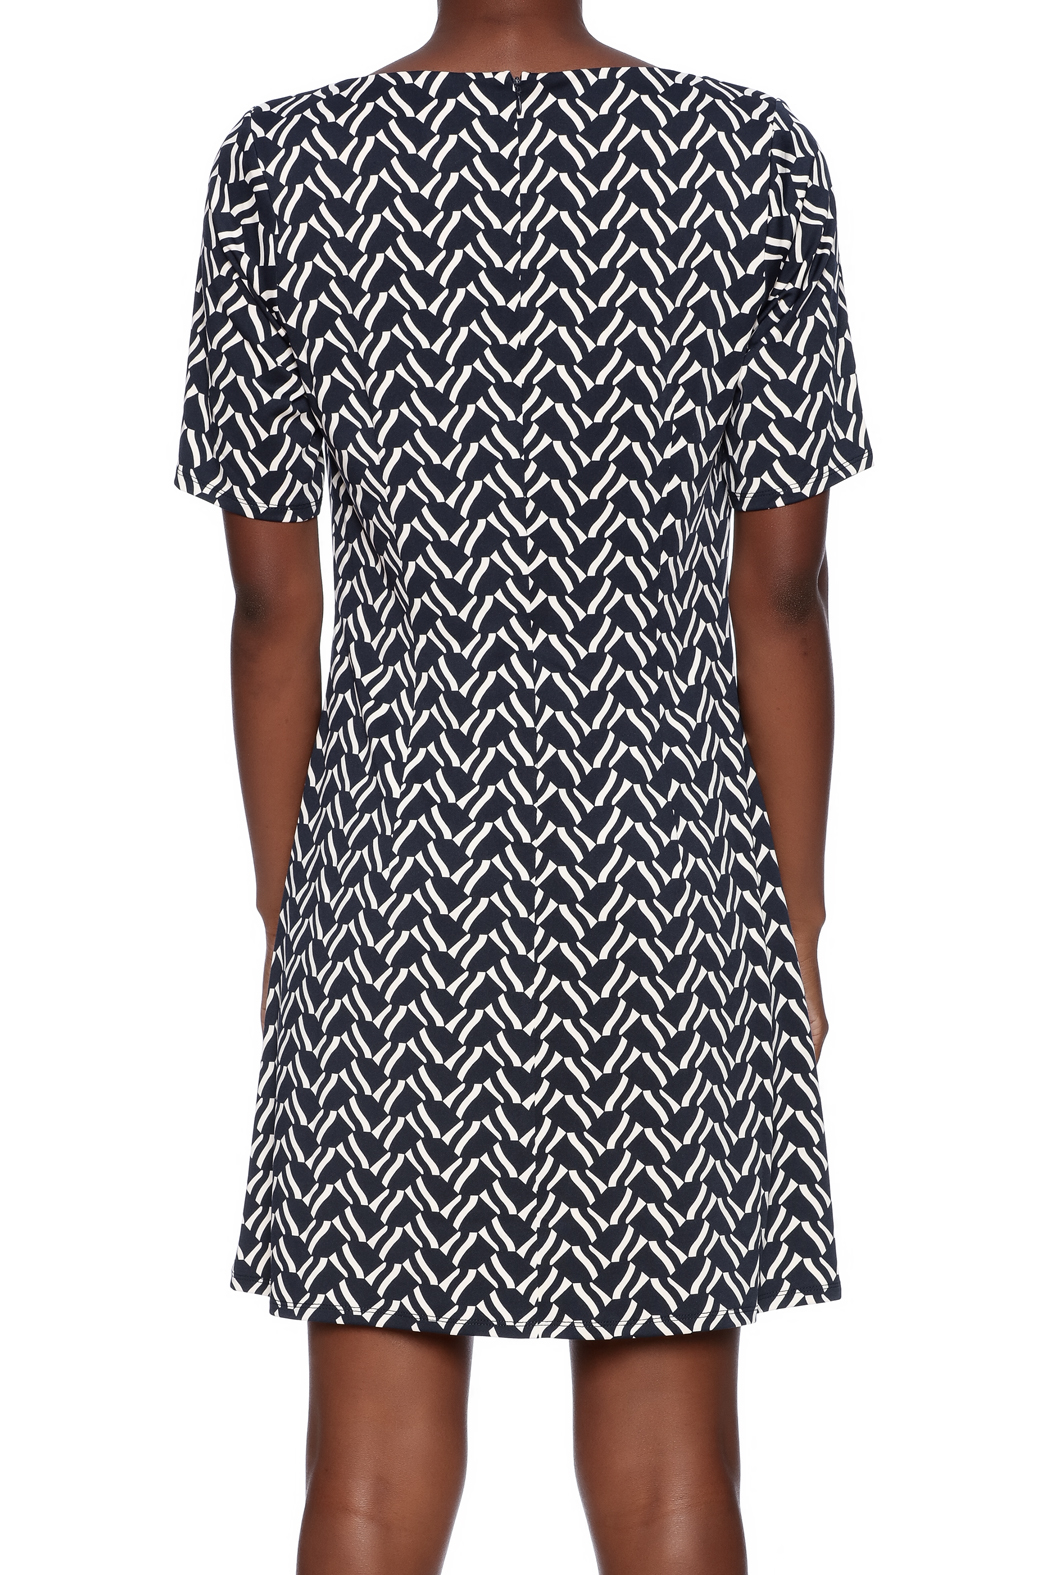 Julie Brown NYC Short Sleeve Dress - Back Cropped Image